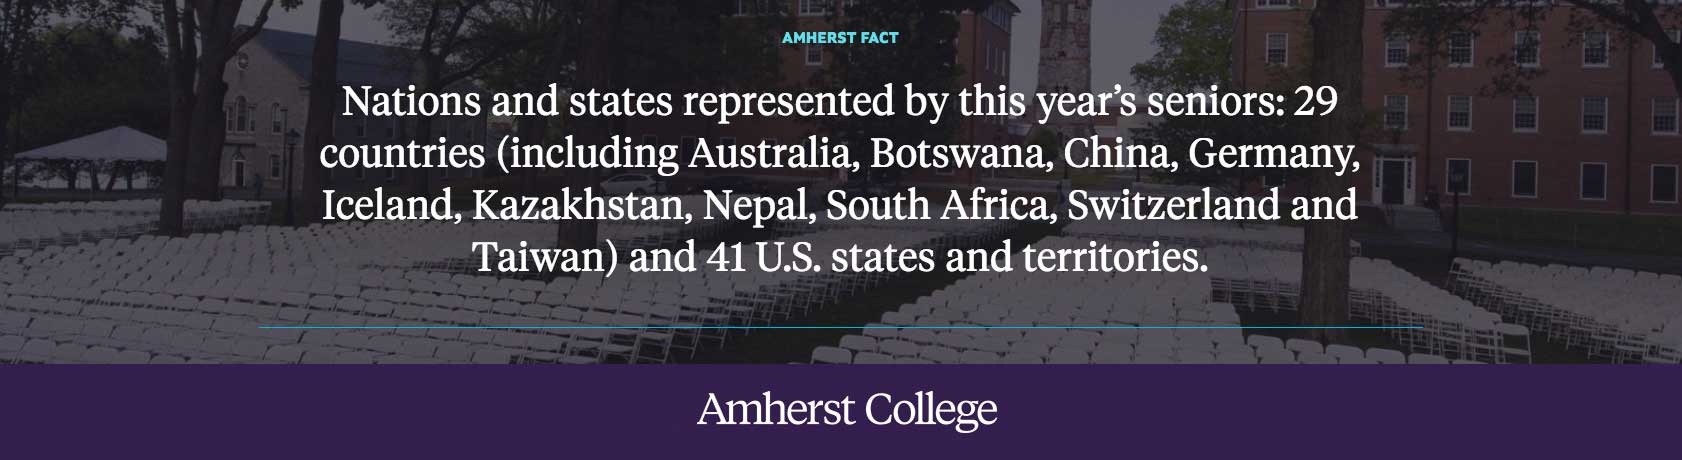 Nations and states represented by this year's senior class: Amherst College